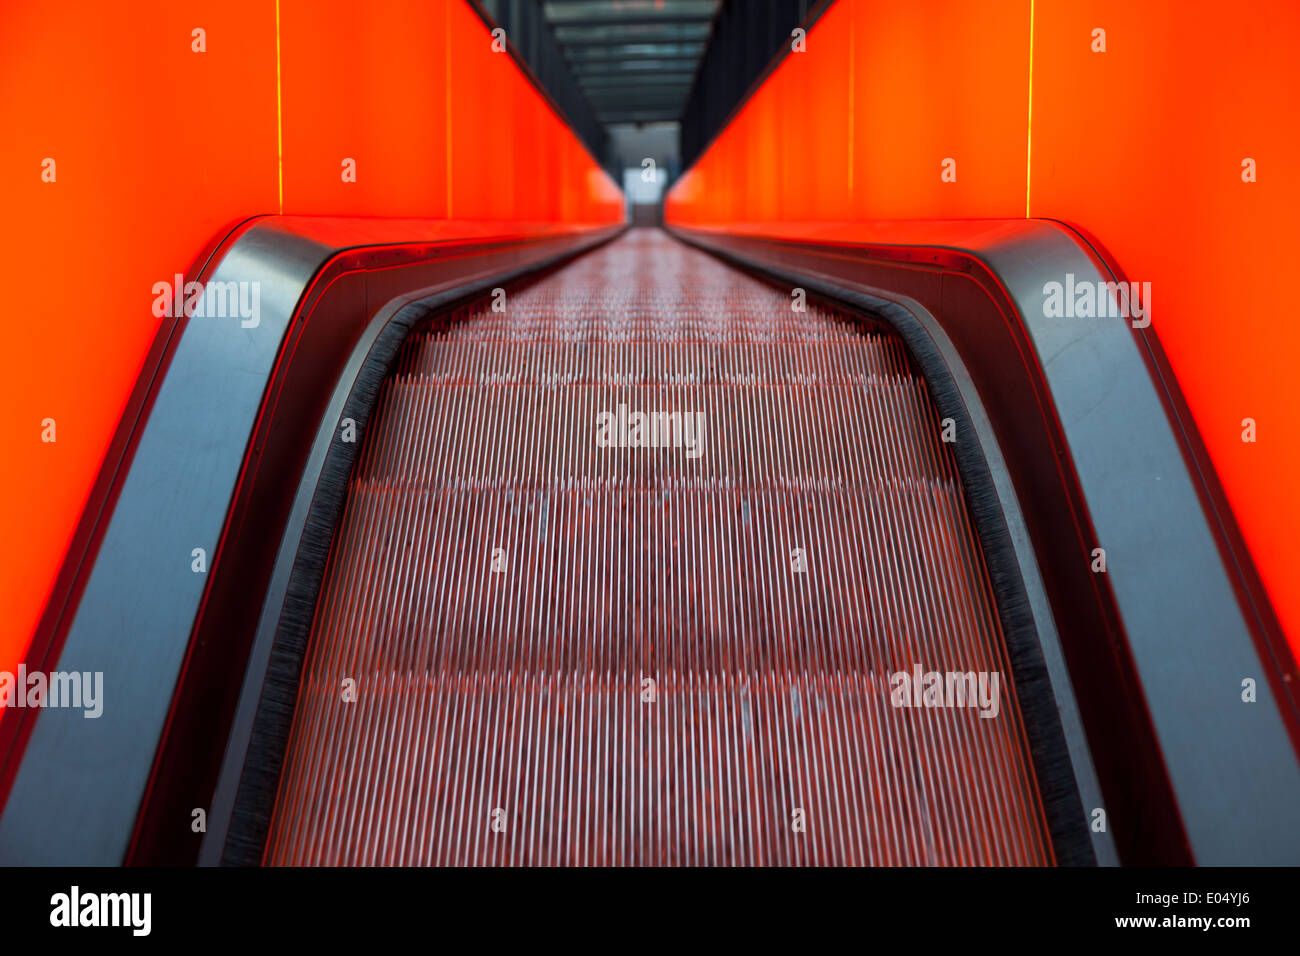 Neon lit escalator up to the museum in the main building of the Zeche Zollverein UNESCO heritage - Stock Image